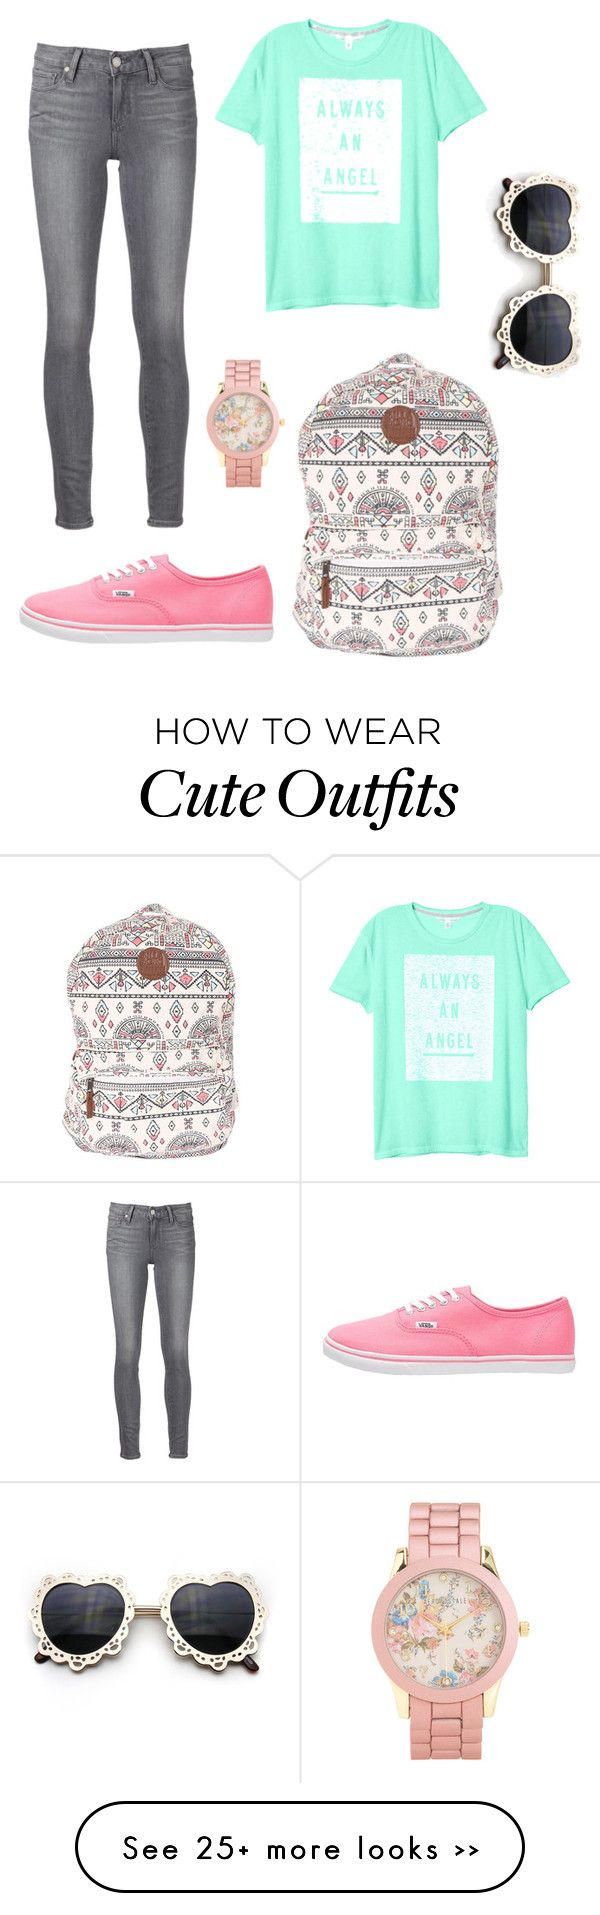 """""""My First Polyvore Outfit"""" by plants14apocalypse on Polyvore"""